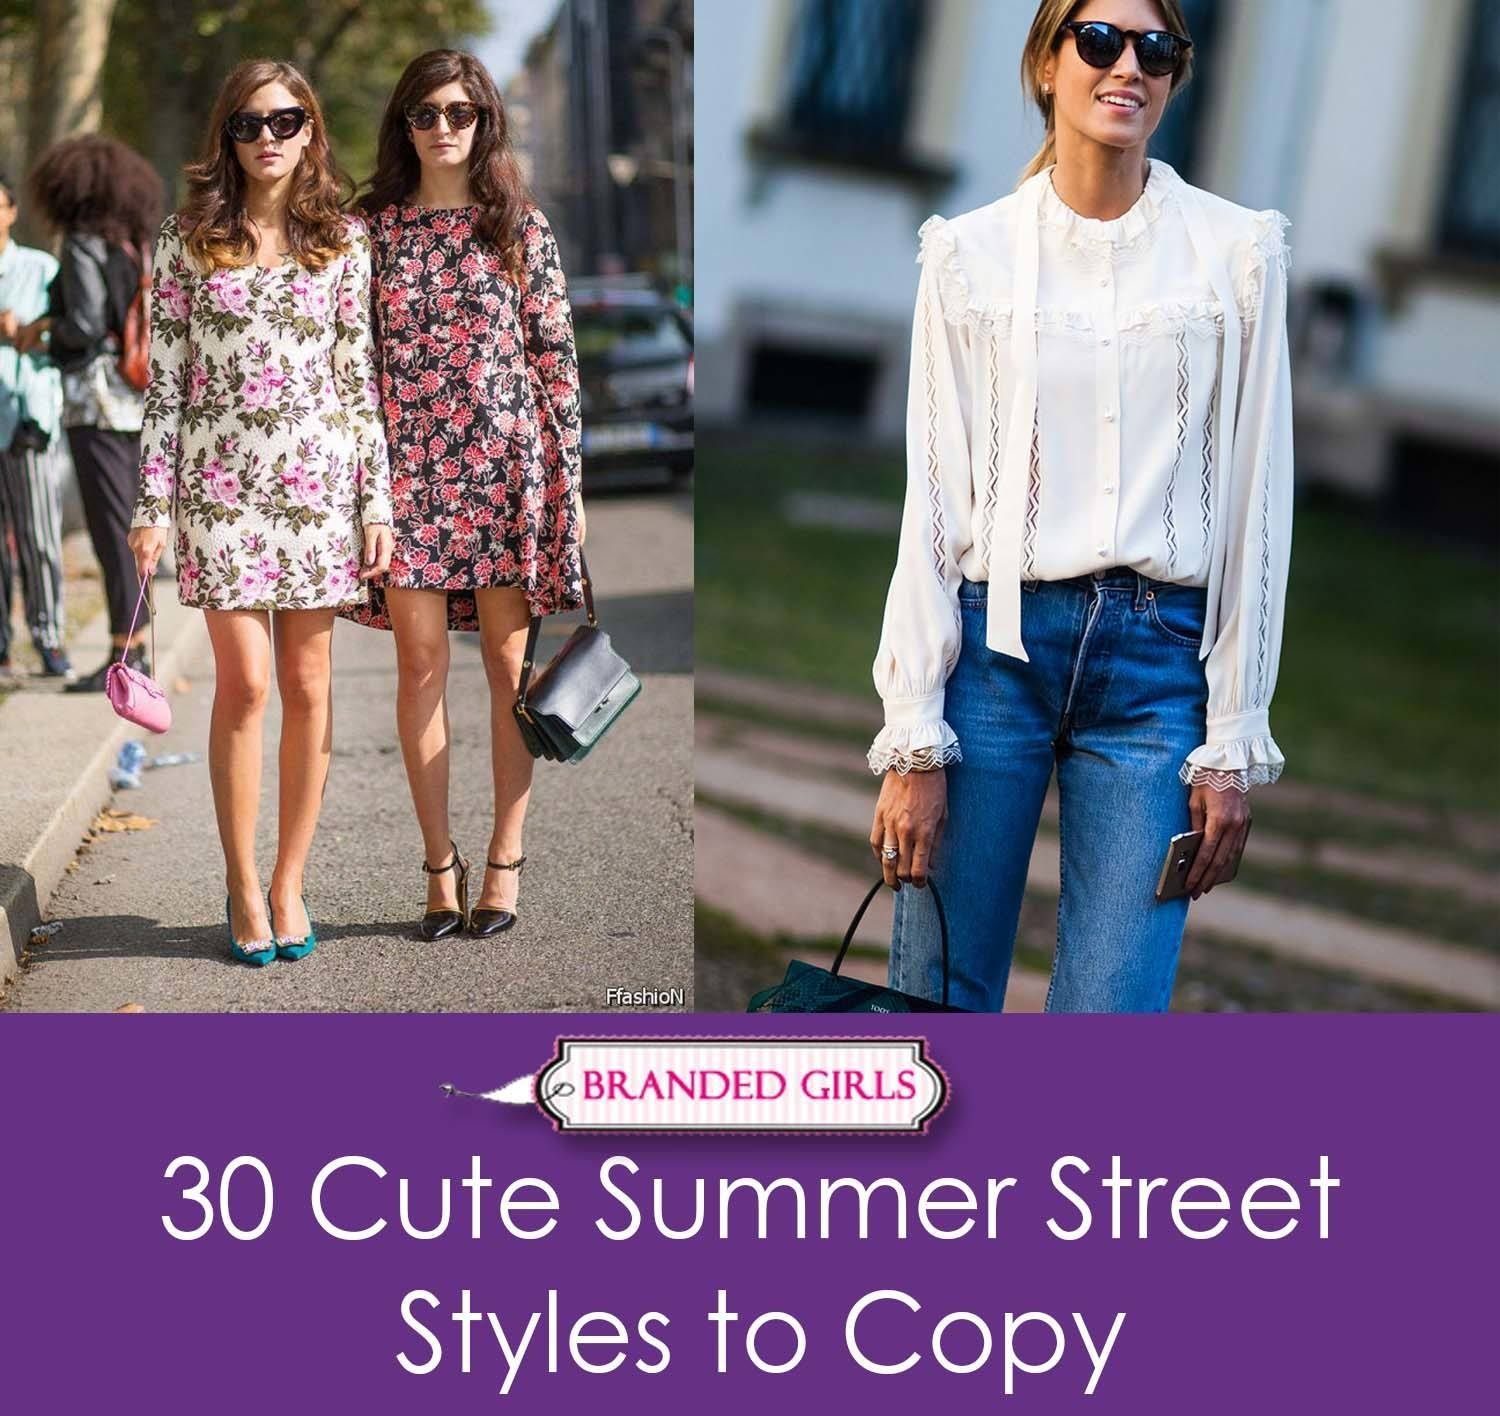 30-cute-summer-styles-to-copy Women Summer Street Style-30 Cute Summer Styles to Copy in 2016